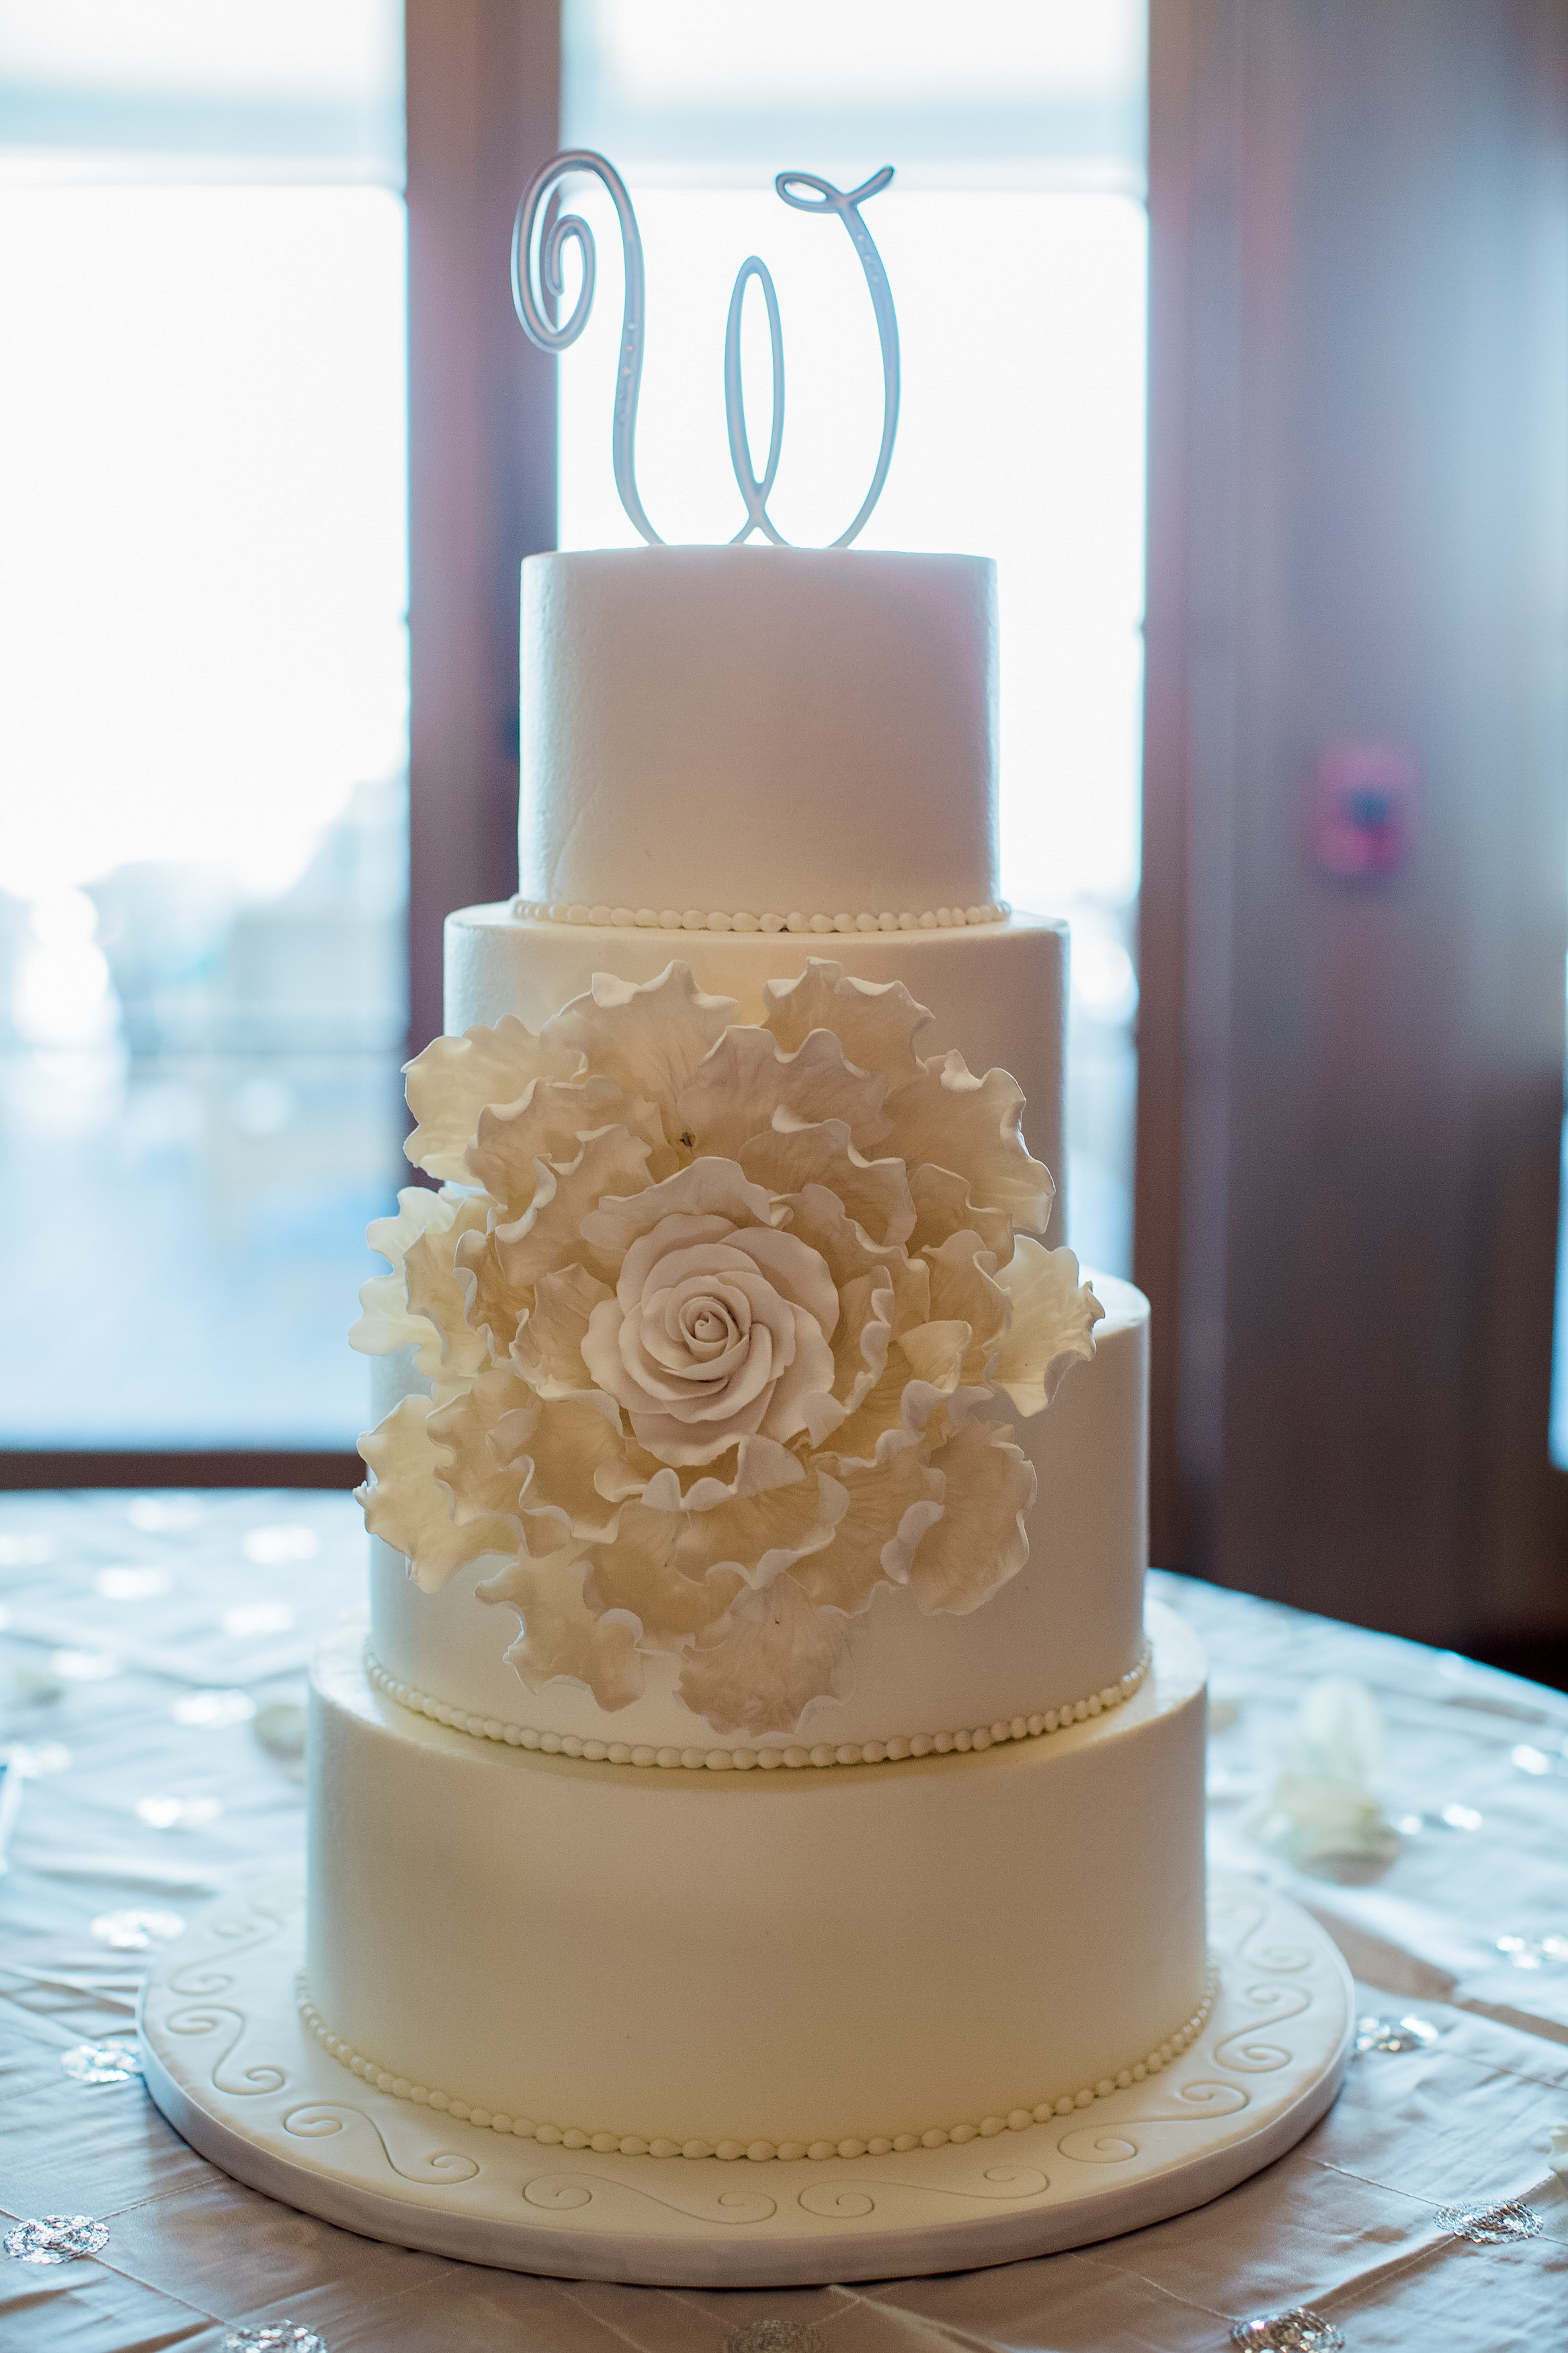 Plan Our Day Houston | Wedding Coordinators | Kemah, TX Wedding at Texas Corinithian Yacht Club Cakes by Gina